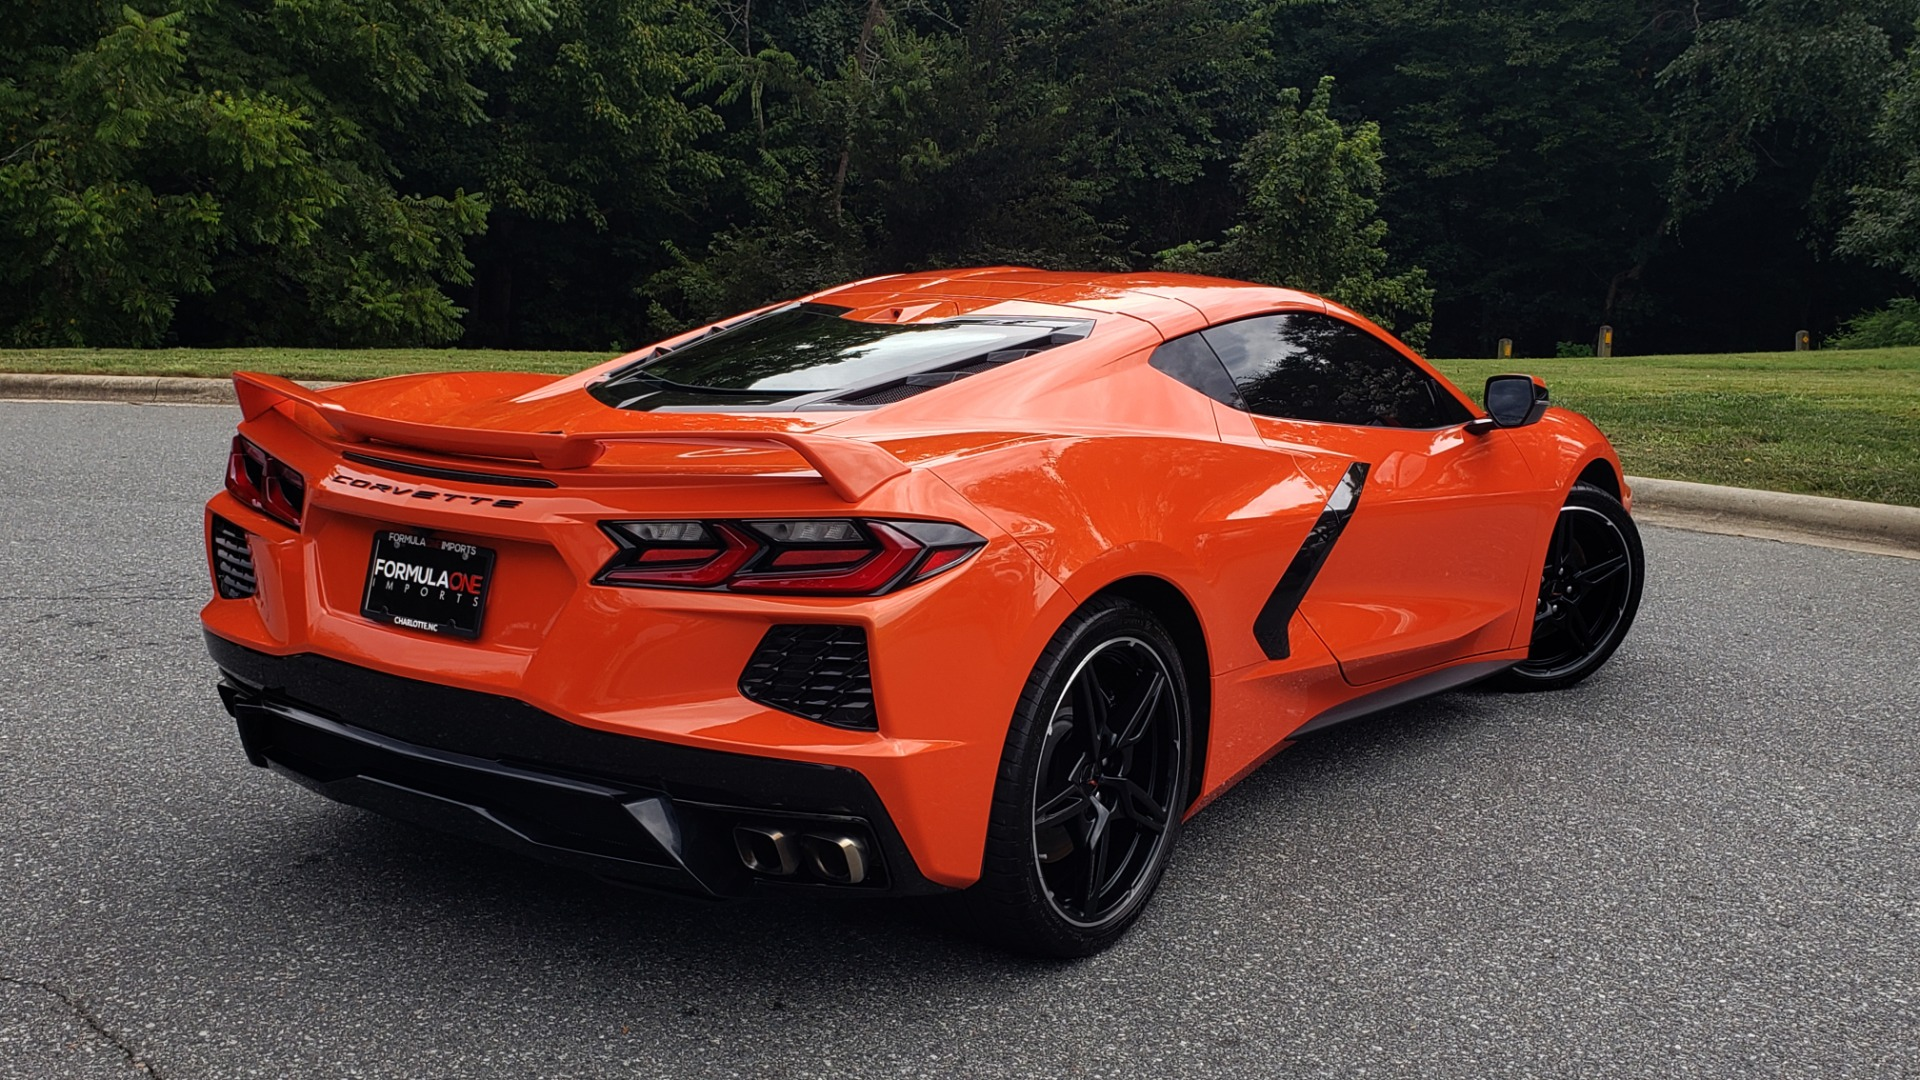 Used 2020 Chevrolet CORVETTE C8 STINGRAY 2LT / 6.2L V8 / 8-SPD AUTO / NAV / BOSE / REARVIEW / DATA RECOR for sale Sold at Formula Imports in Charlotte NC 28227 9